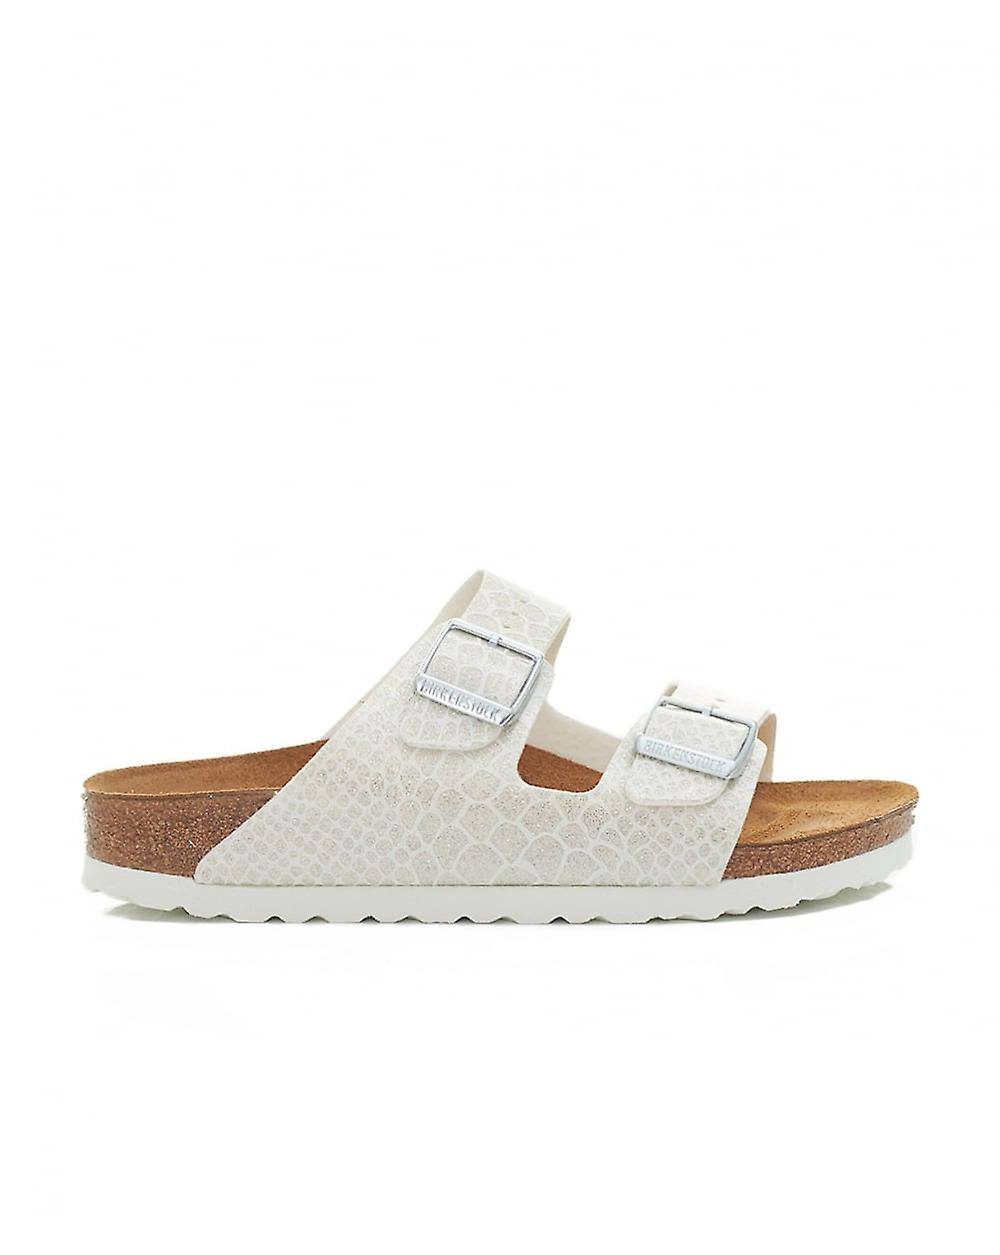 Birkenstock Arizona Narrow Two Strap Sandals